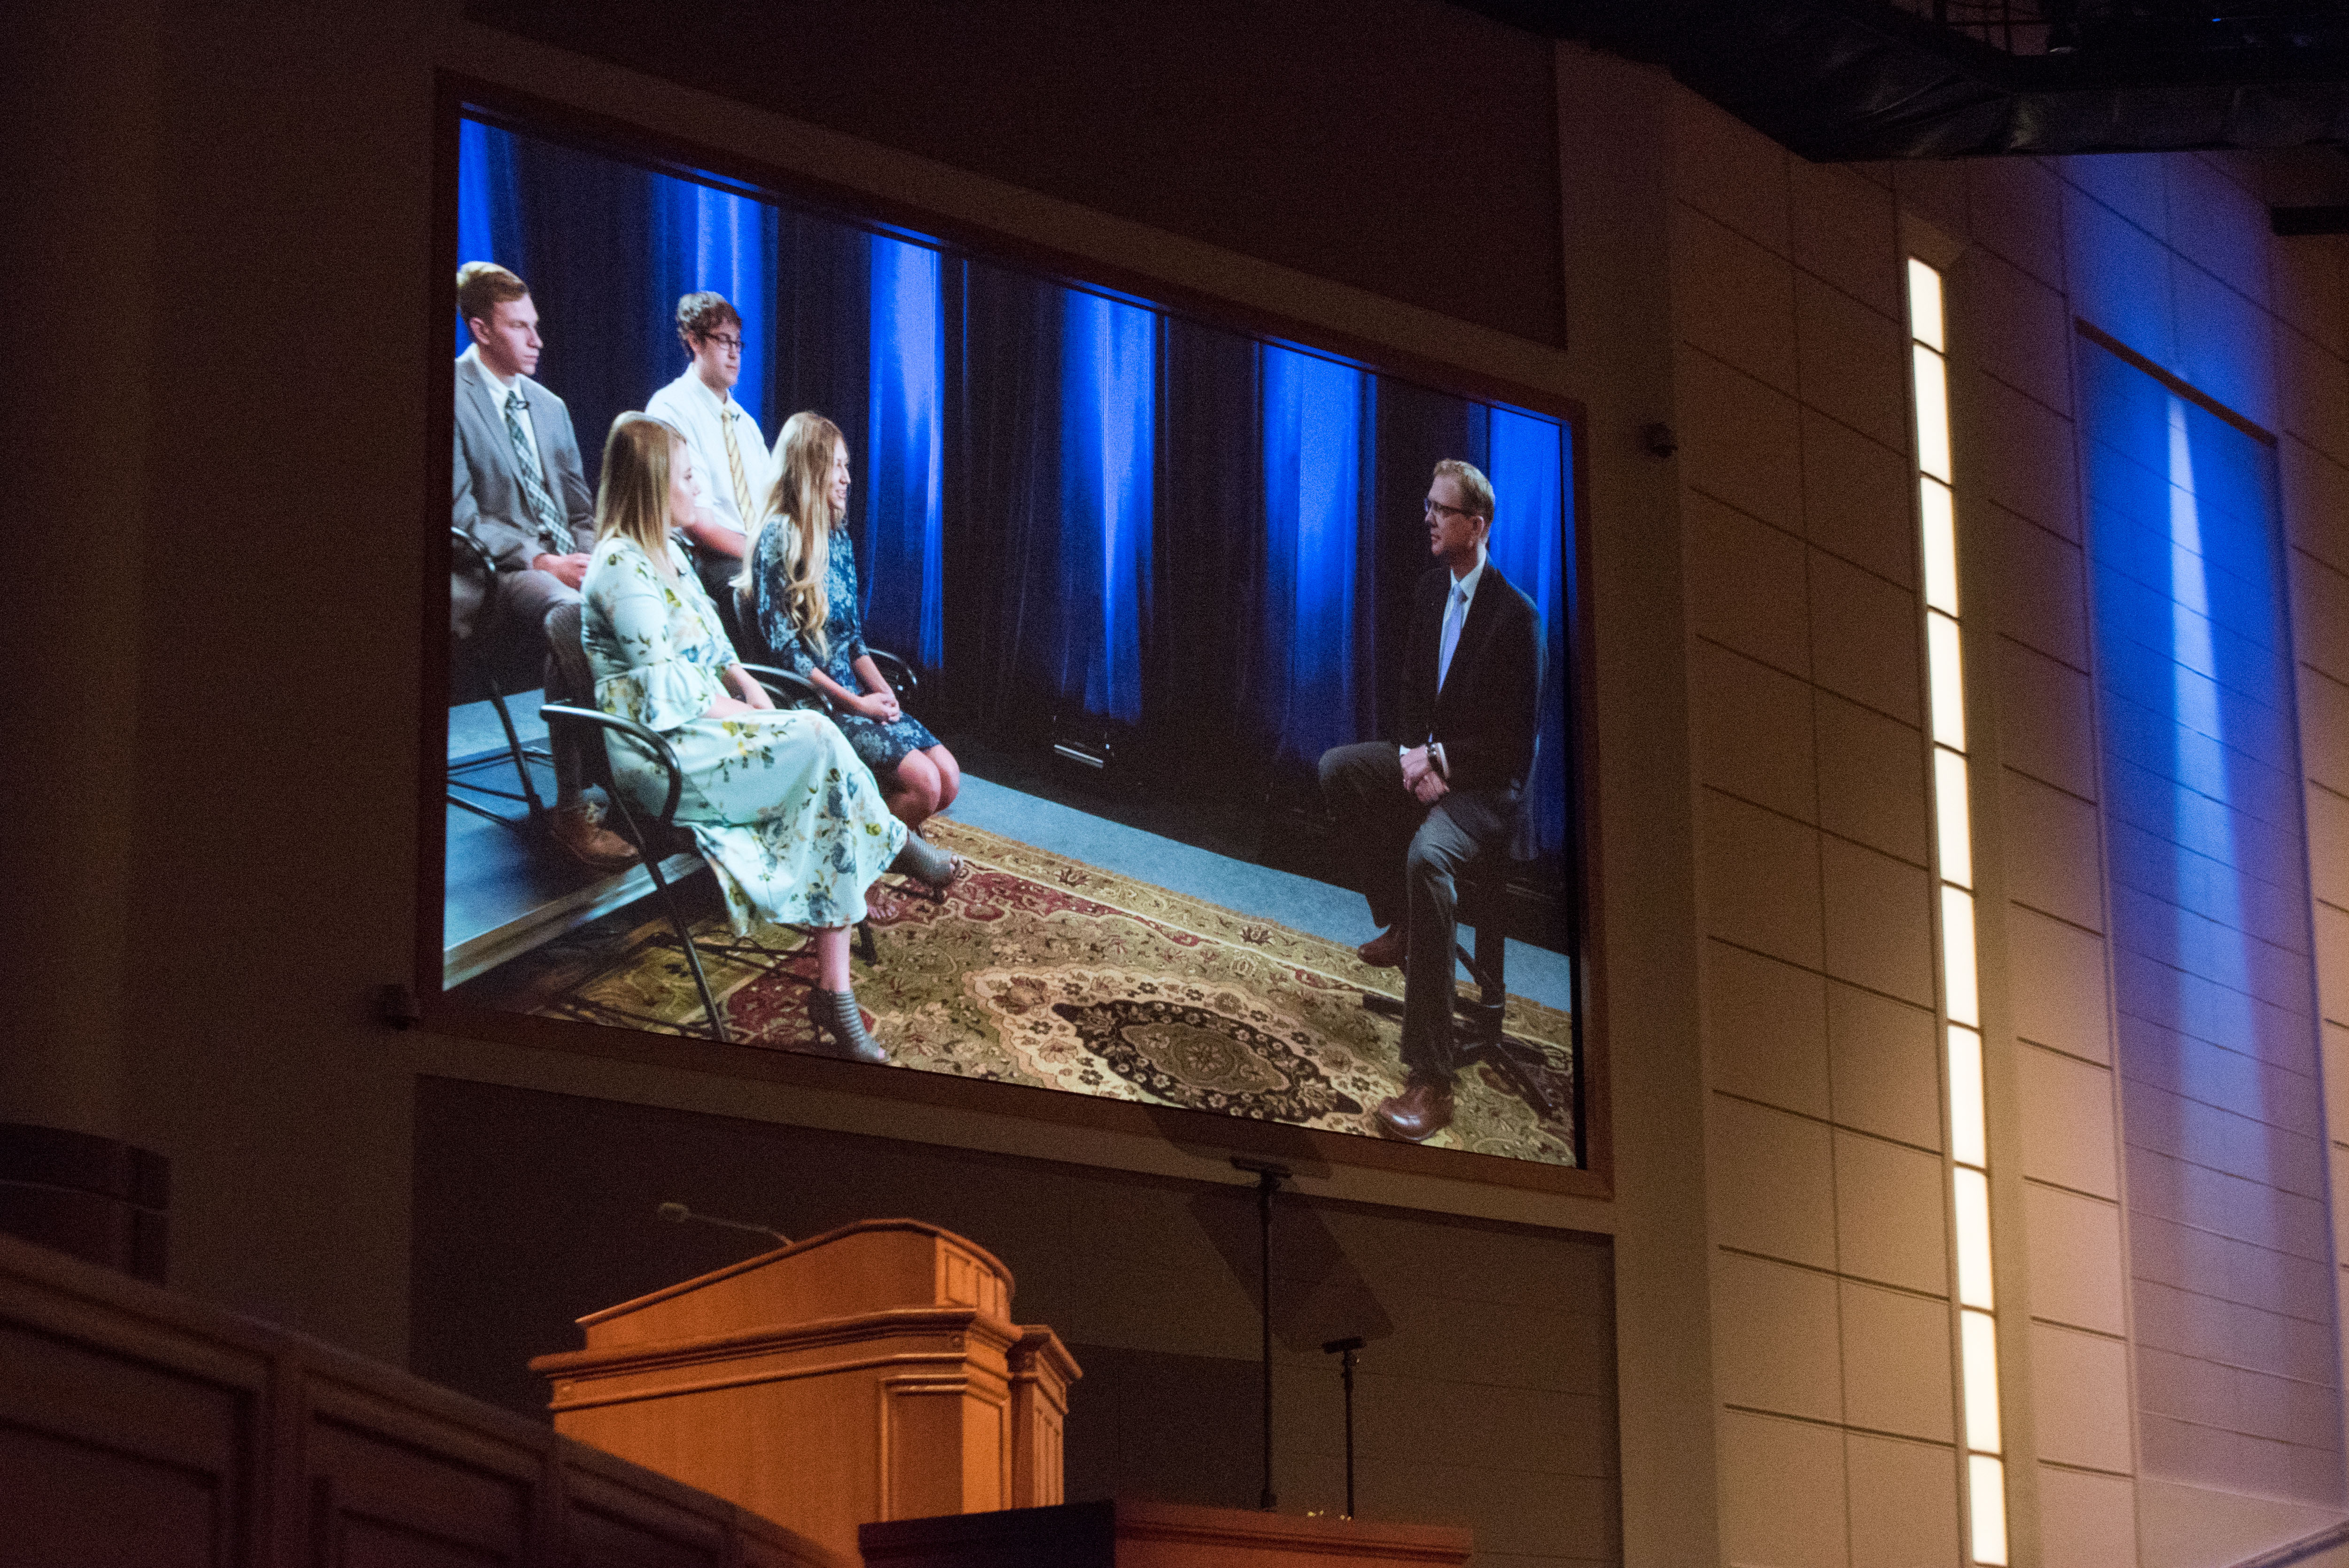 During his speech, Nels Hansen showed video clips of students discussing ministering.